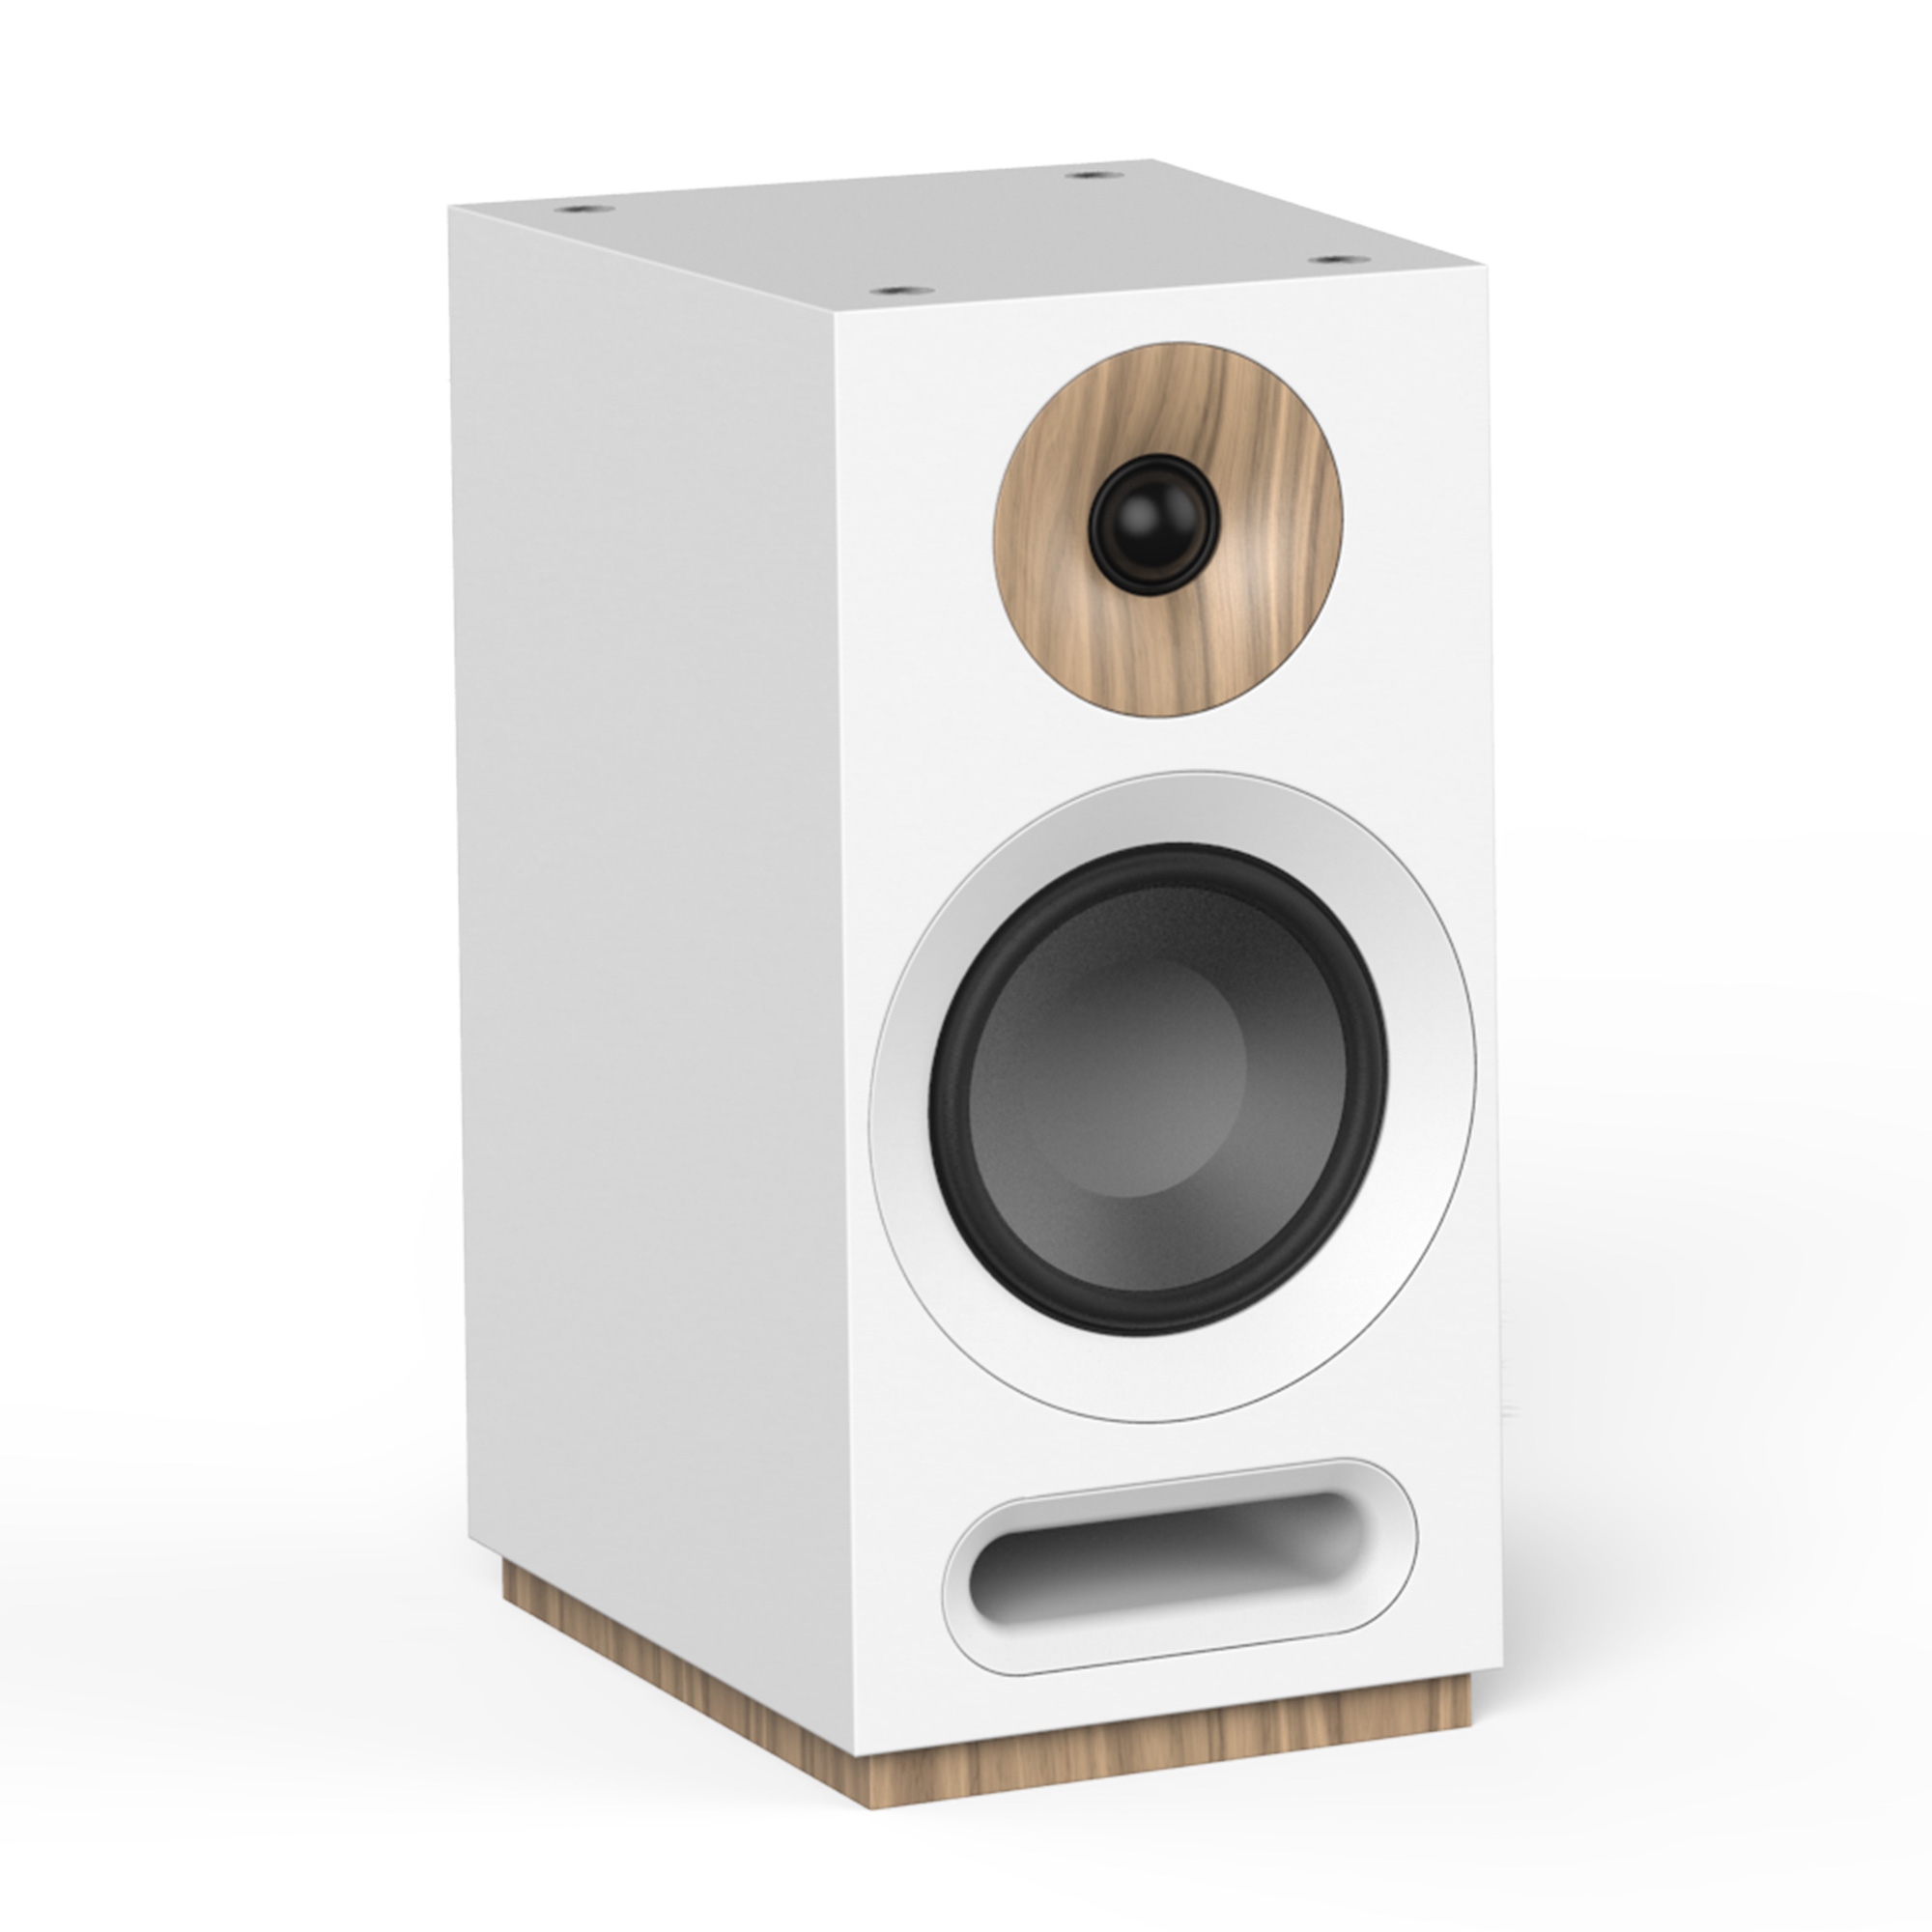 reviews improves a bluetooth review of well bookshelf model nocs connect spotify wiredexcellent on work airplay addition previous ft sounding air speaker and speakers or desktop wired monitors upon only